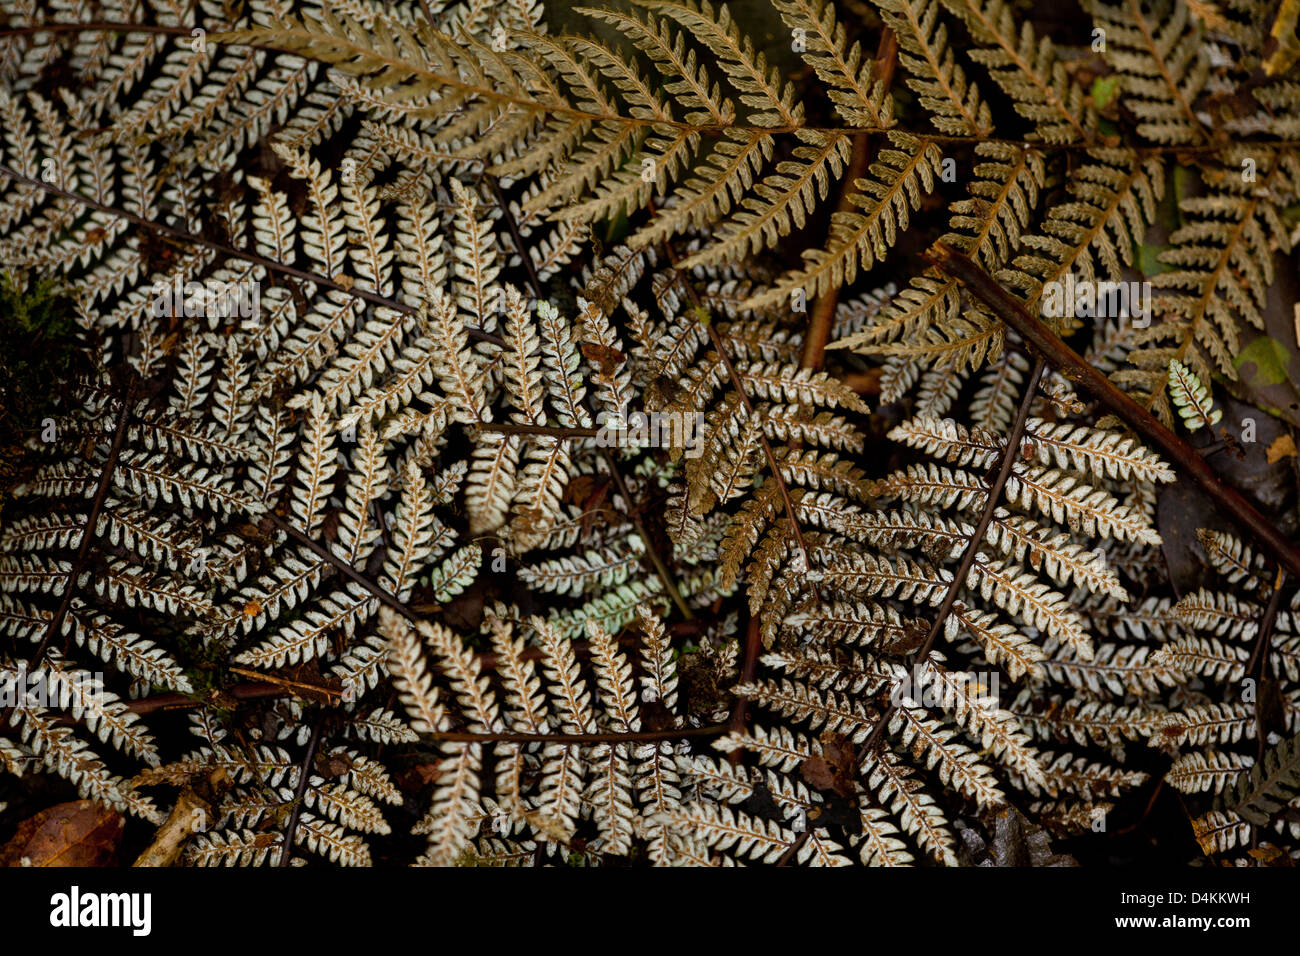 Fern leaf structures on the cloudforest floor in La Amistad national park, Panama province, Republic of Panama. - Stock Image